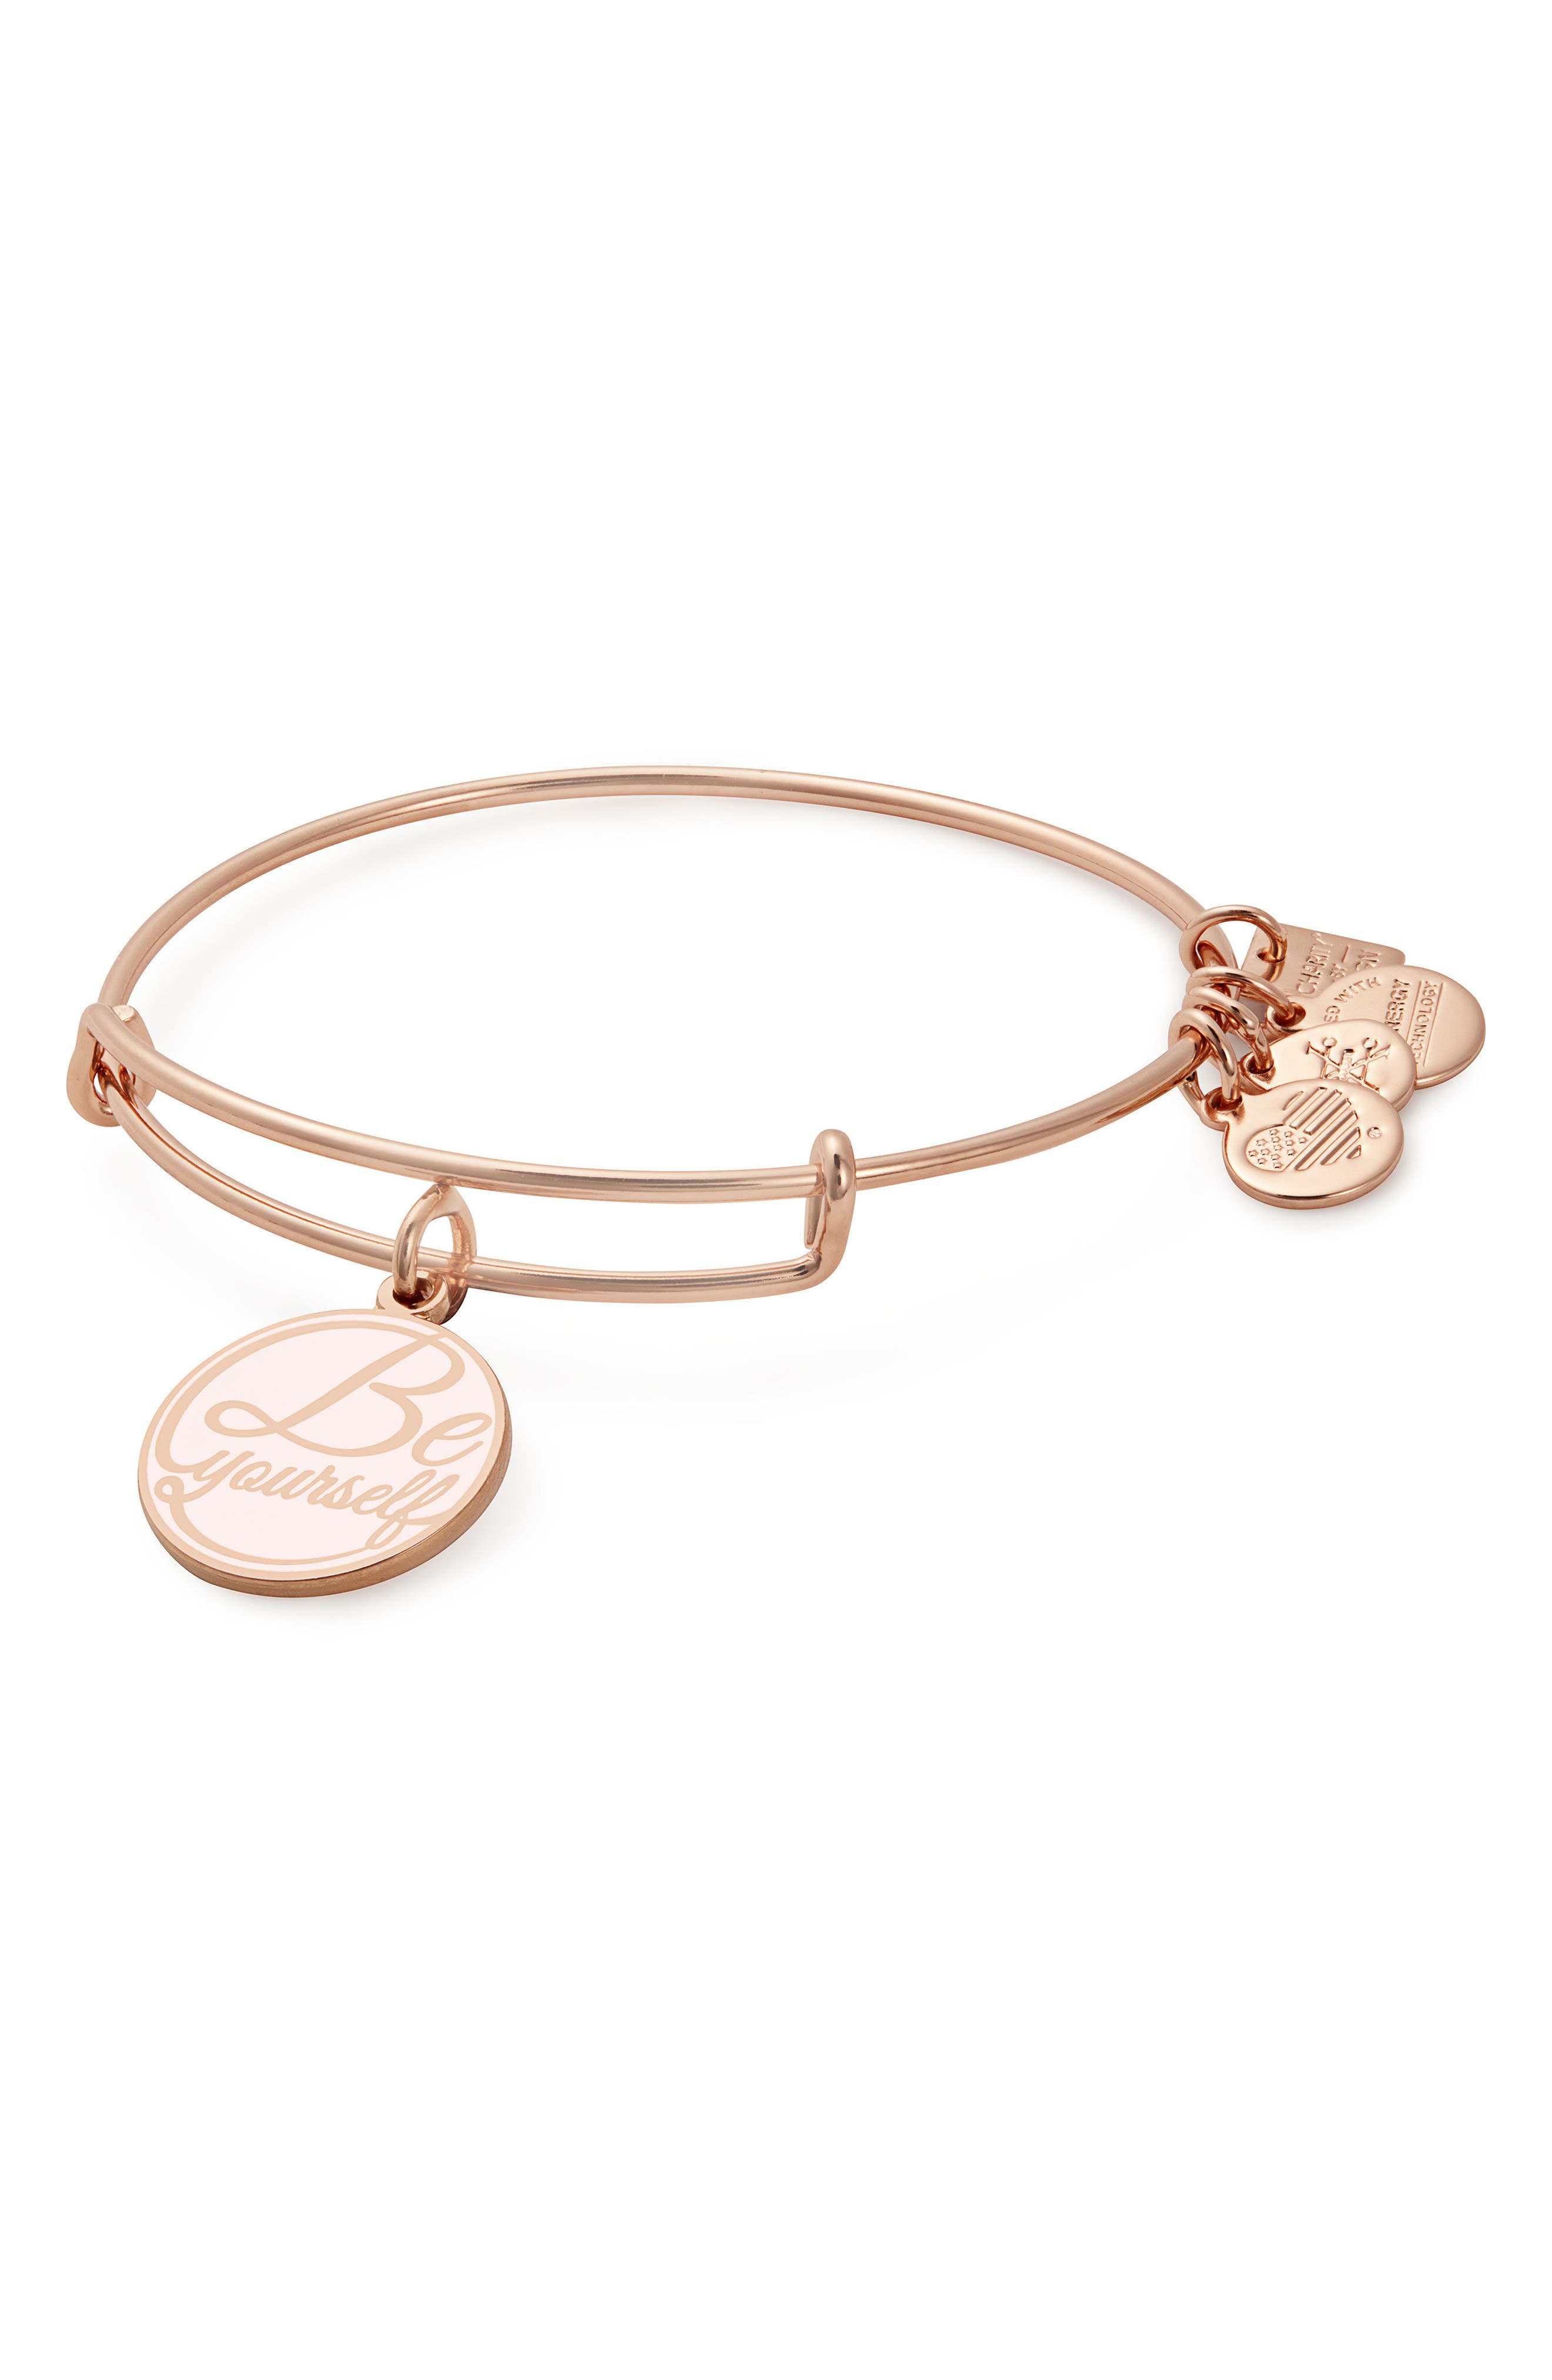 Kindred Cord Be Yourself Bangle,                         Main,                         color, Rose Gold